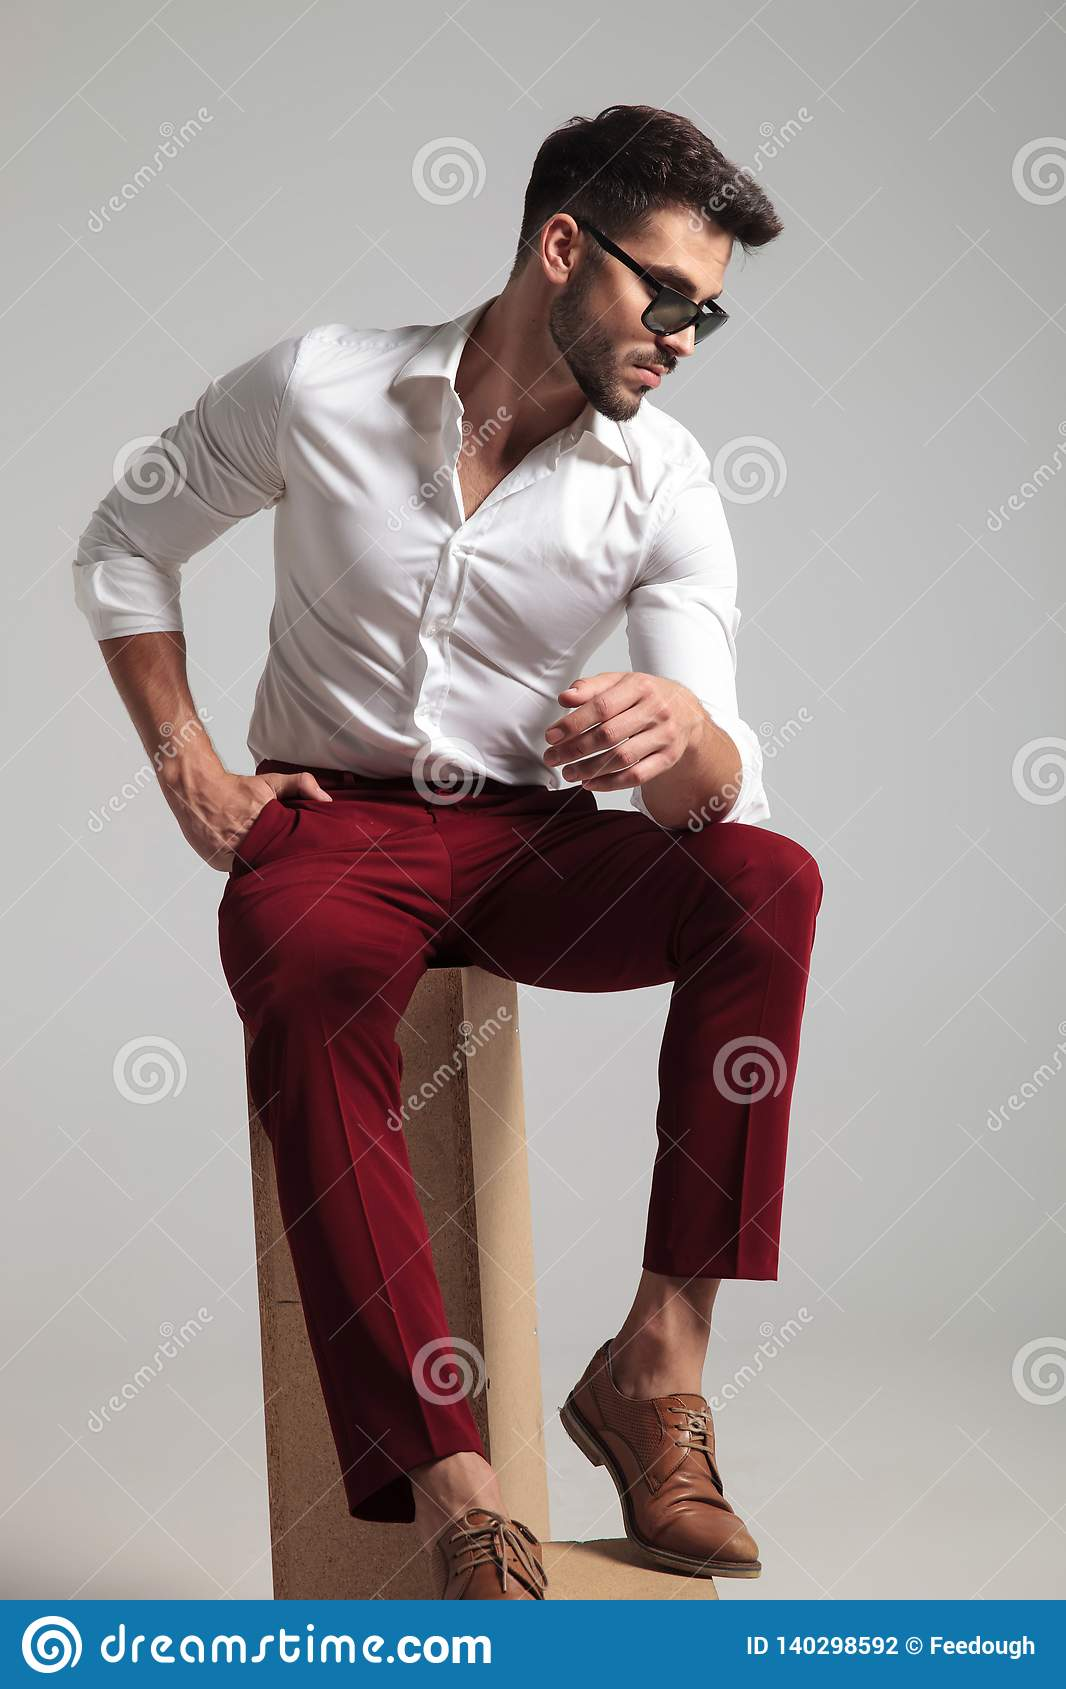 Attractive Man Poses With Hand In His Pocket Stock Photo Image Of Pants Dramatic 140298592